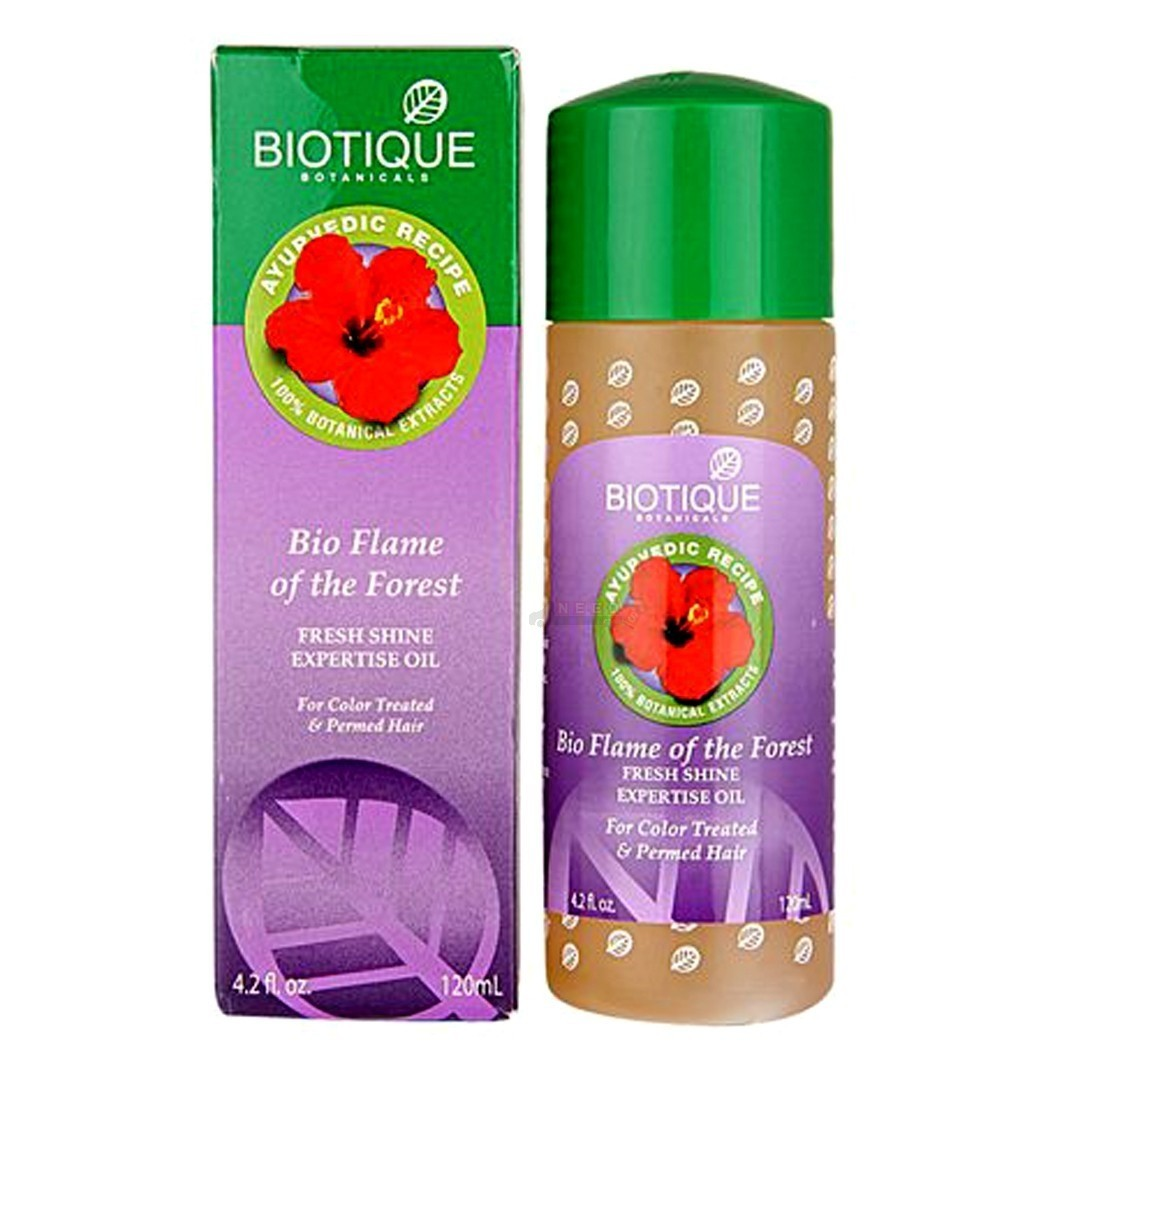 Biotique Flame of the Forest